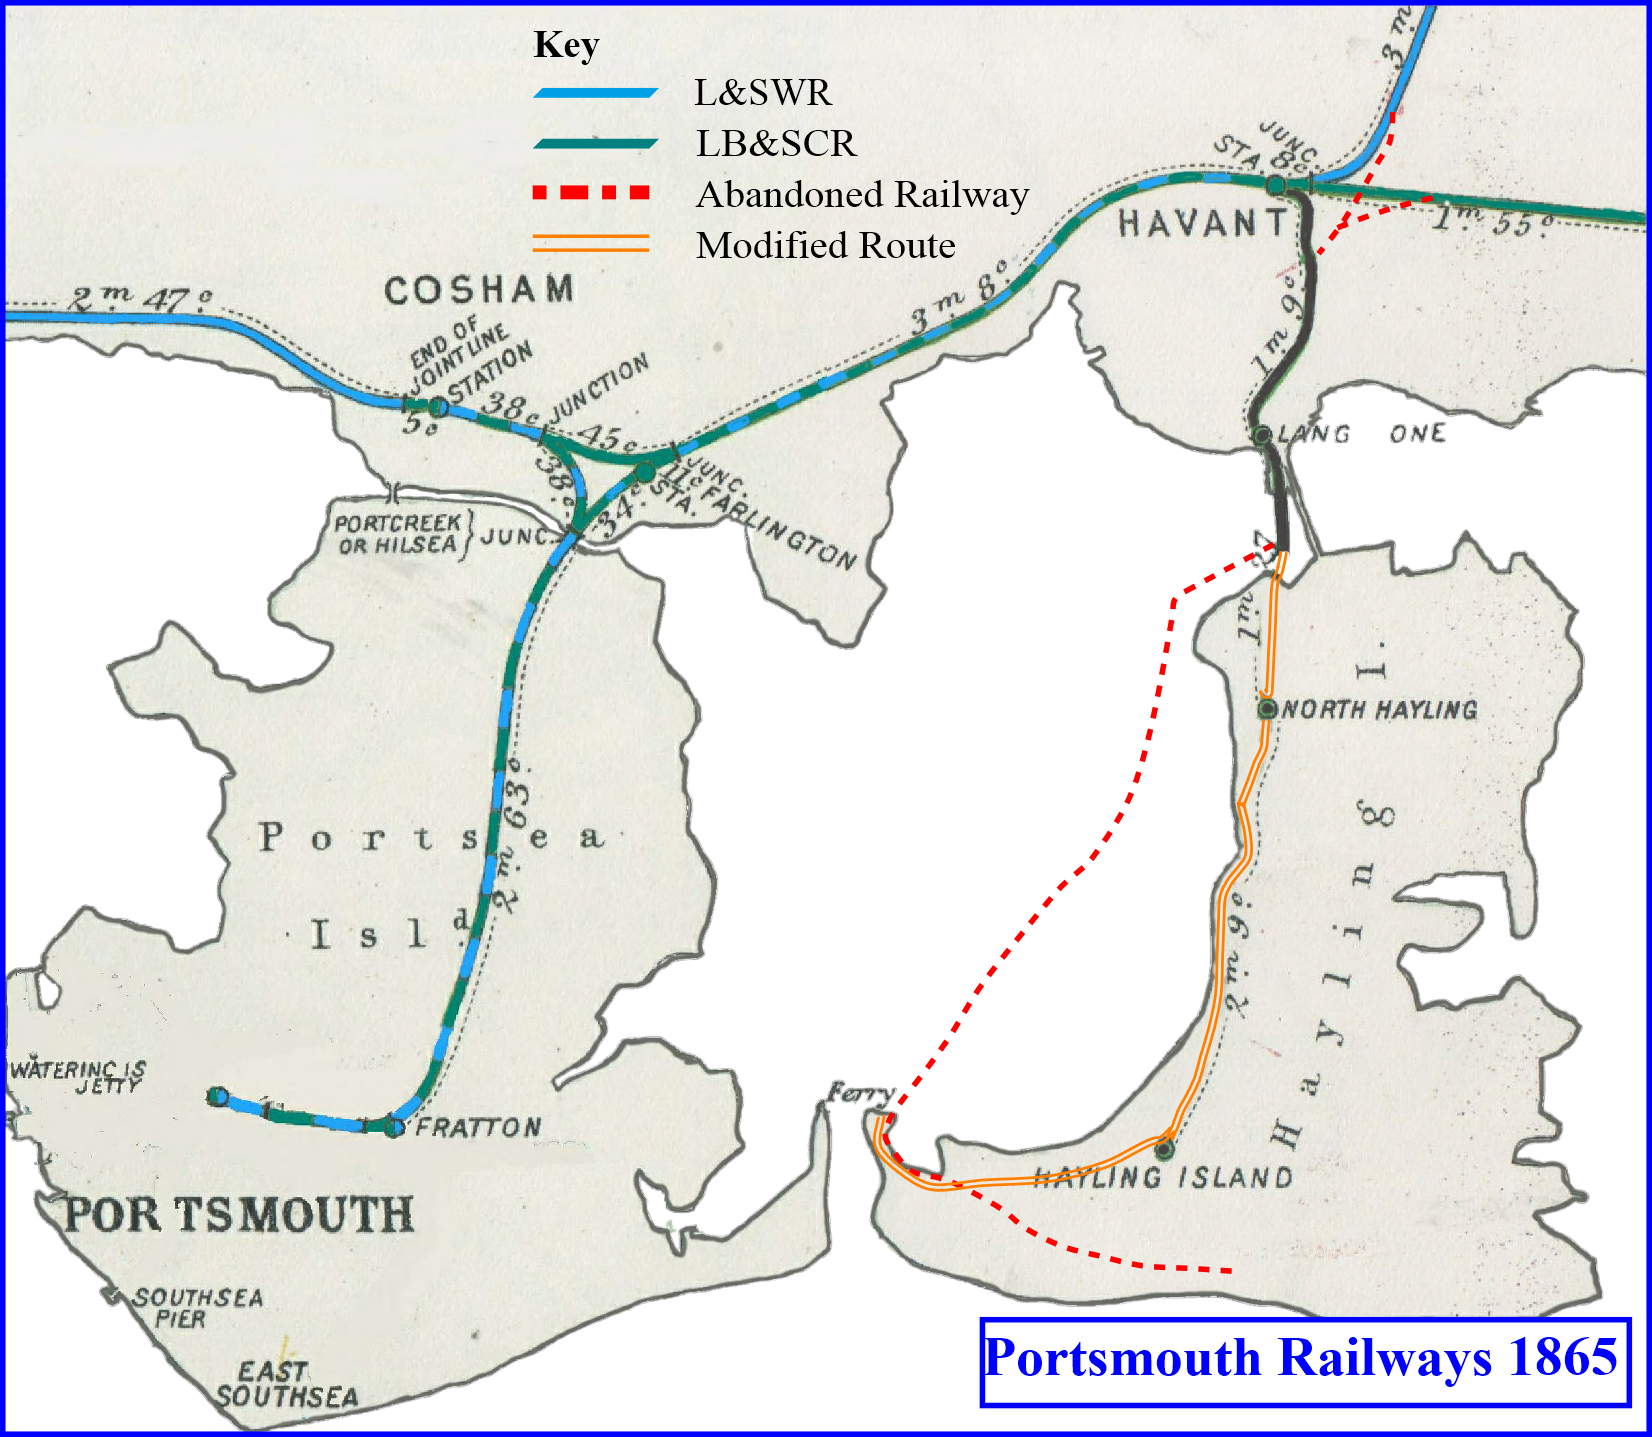 This image is a map describing Bill to Parliament to abandon the 1860 railway route from the bridge with a new route following the coastline.